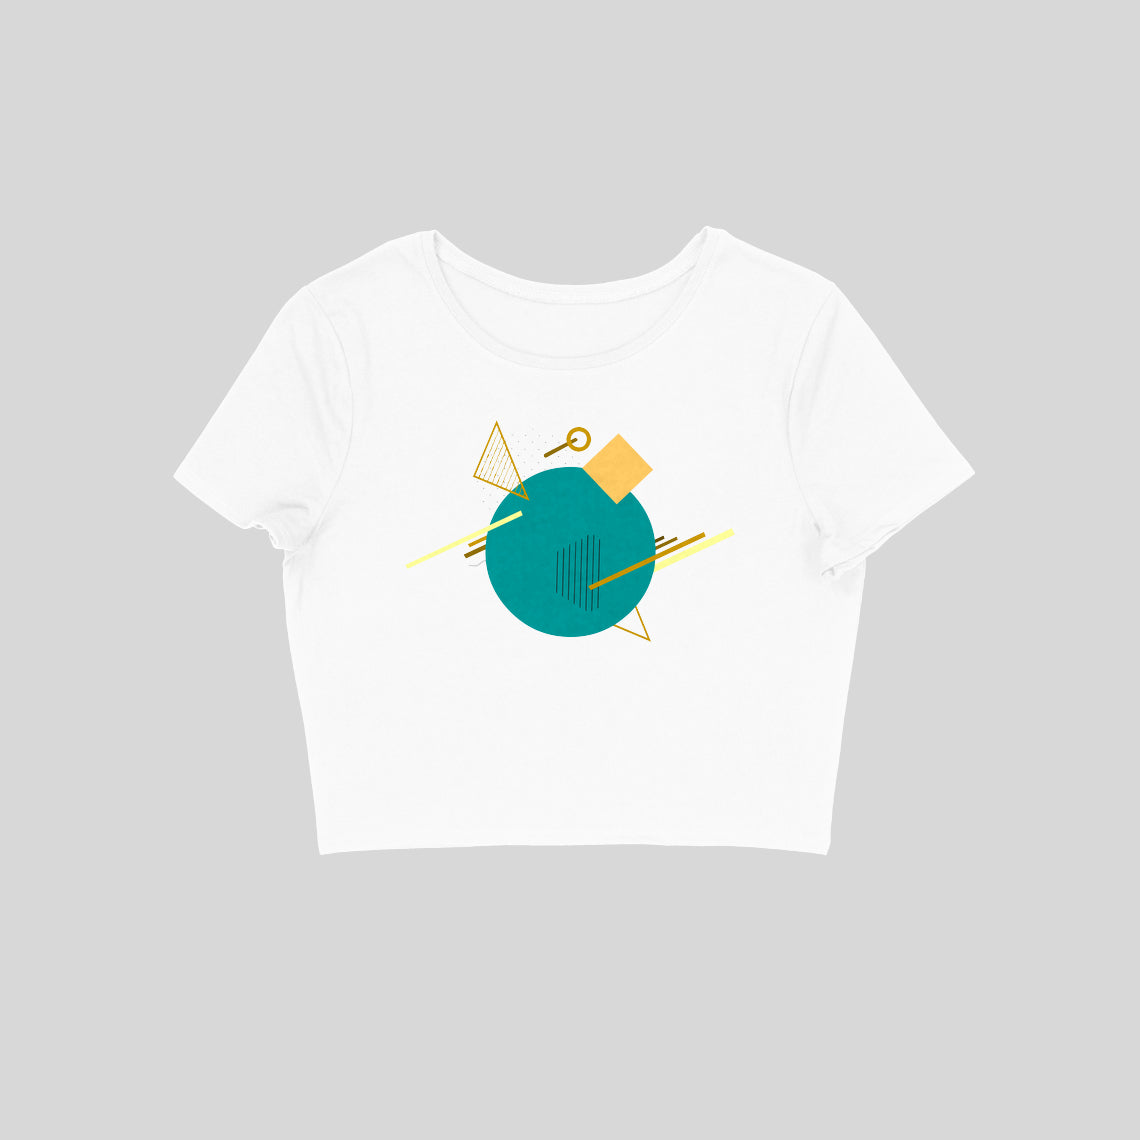 Aqua Island - Women's Crop Top